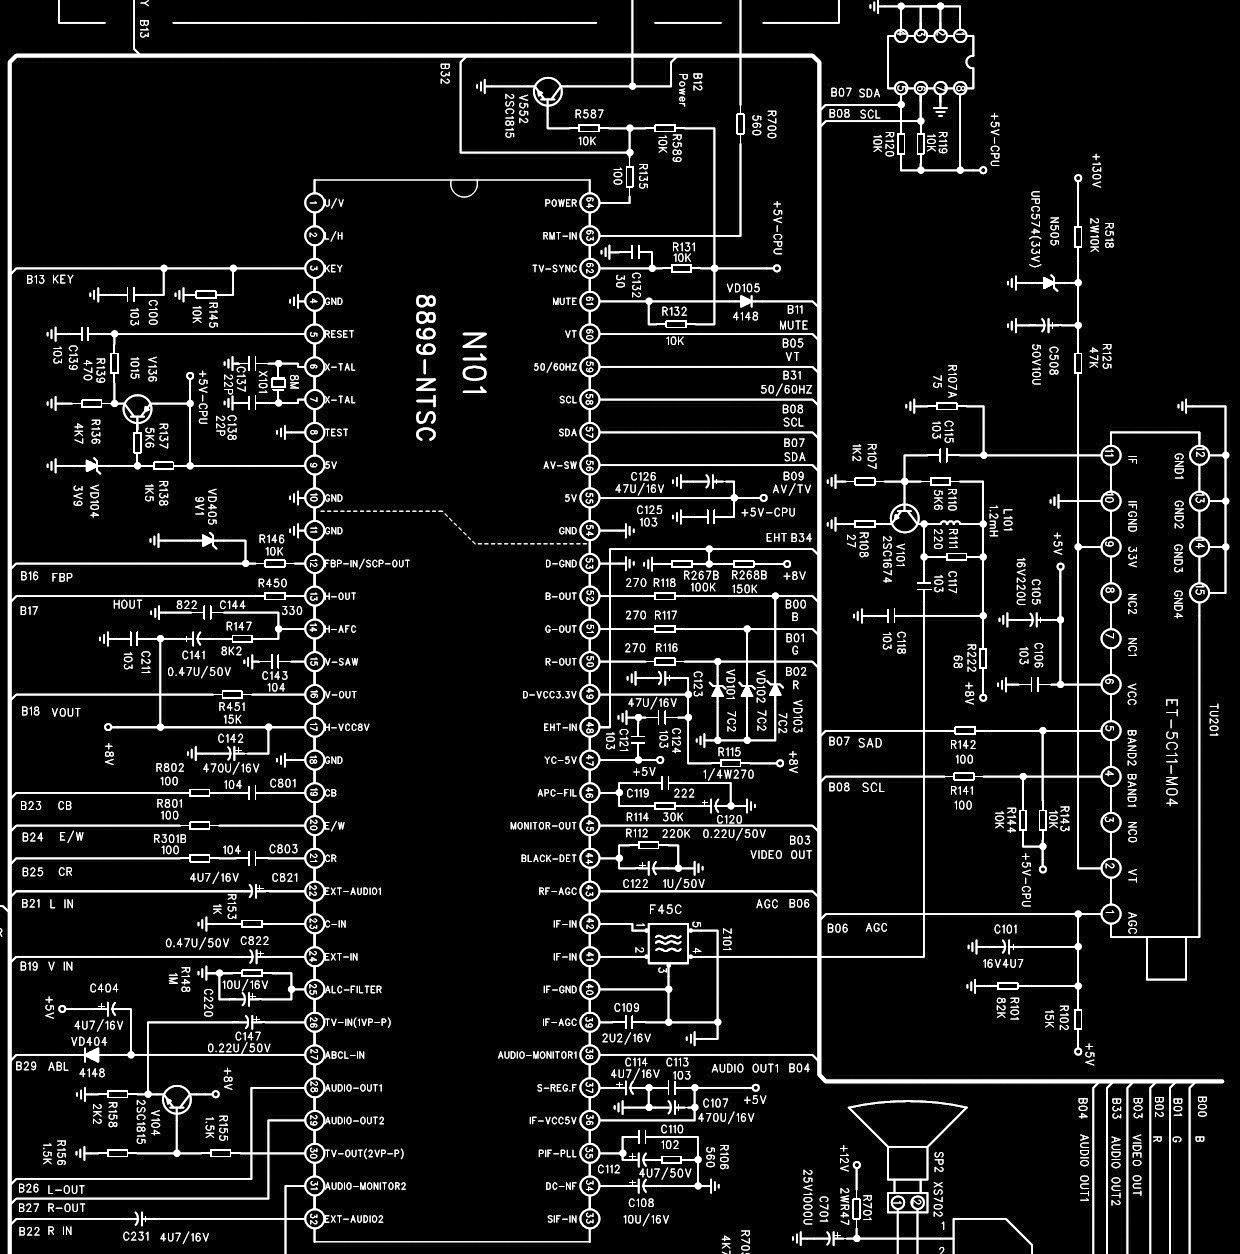 parker tu2191 ultraslim crt tv full circuit diagram tips and rh tips trick electronic blogspot com RF Transmitter Circuit Diagram RF Transmitter Circuit Diagram